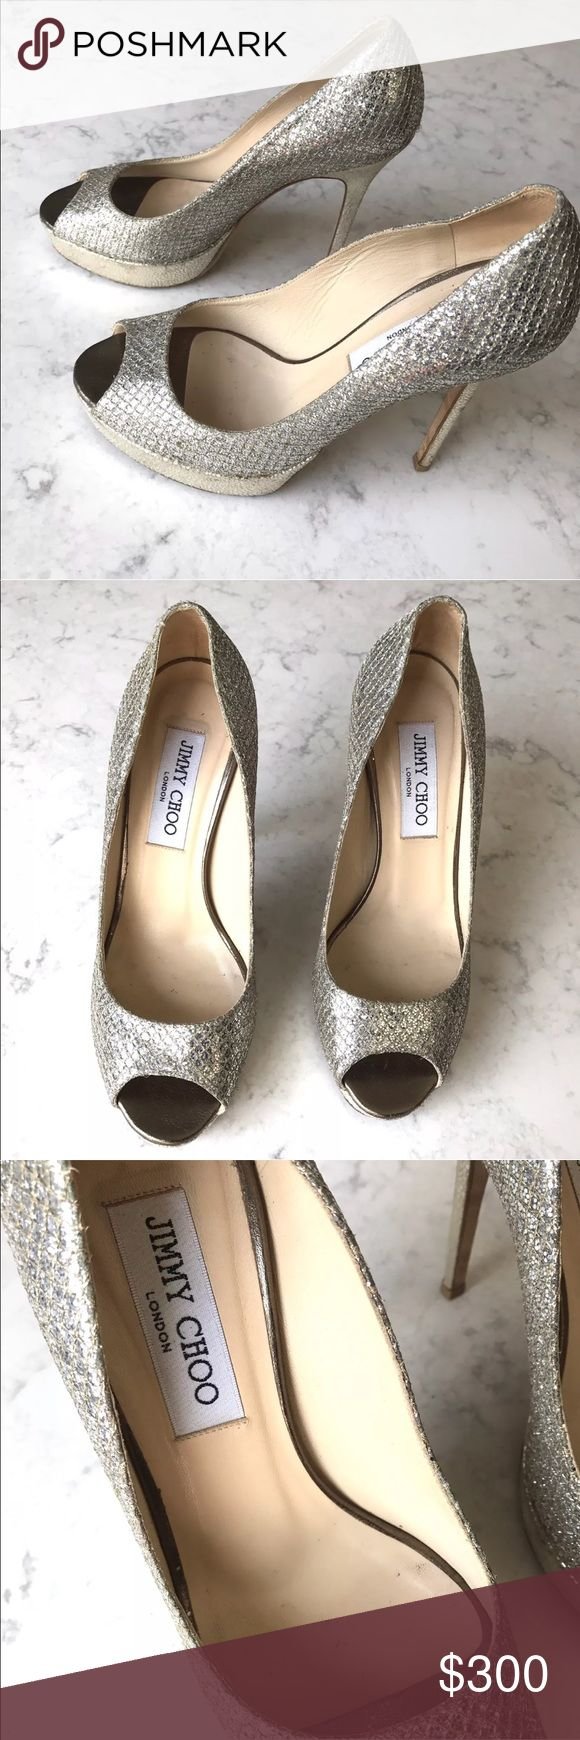 """Jimmy Choo Silver Glitter Heels Shoes Jimmy Choo Silver Glitter Peep Toe Platform Heels Shoes  5"""" heel Some discoloration at the seems (see photos 8)  ***Please feel free to ask any questions***  💚Thank you for your interest!💚  (BE:1221) Jimmy Choo Shoes Heels #GlitterHeels"""